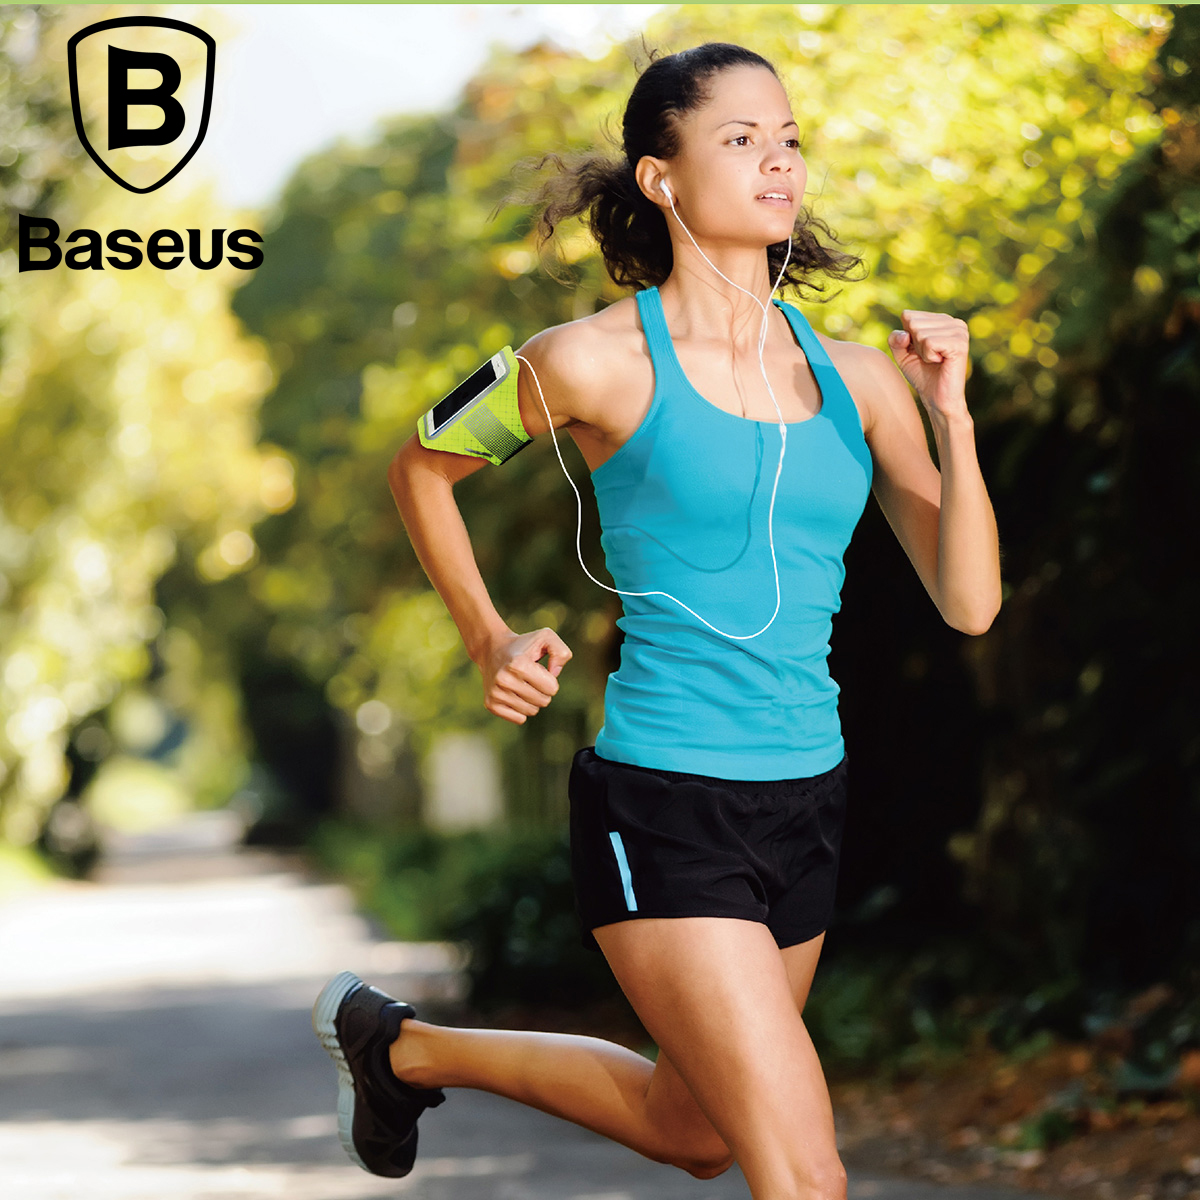 Baseus Sports Running Armband Waterproof Arm Band Cover Case For iPhone 7 6 6s Plus Samsung Xiaomi HTC LG Sony Phone Bag Pouch